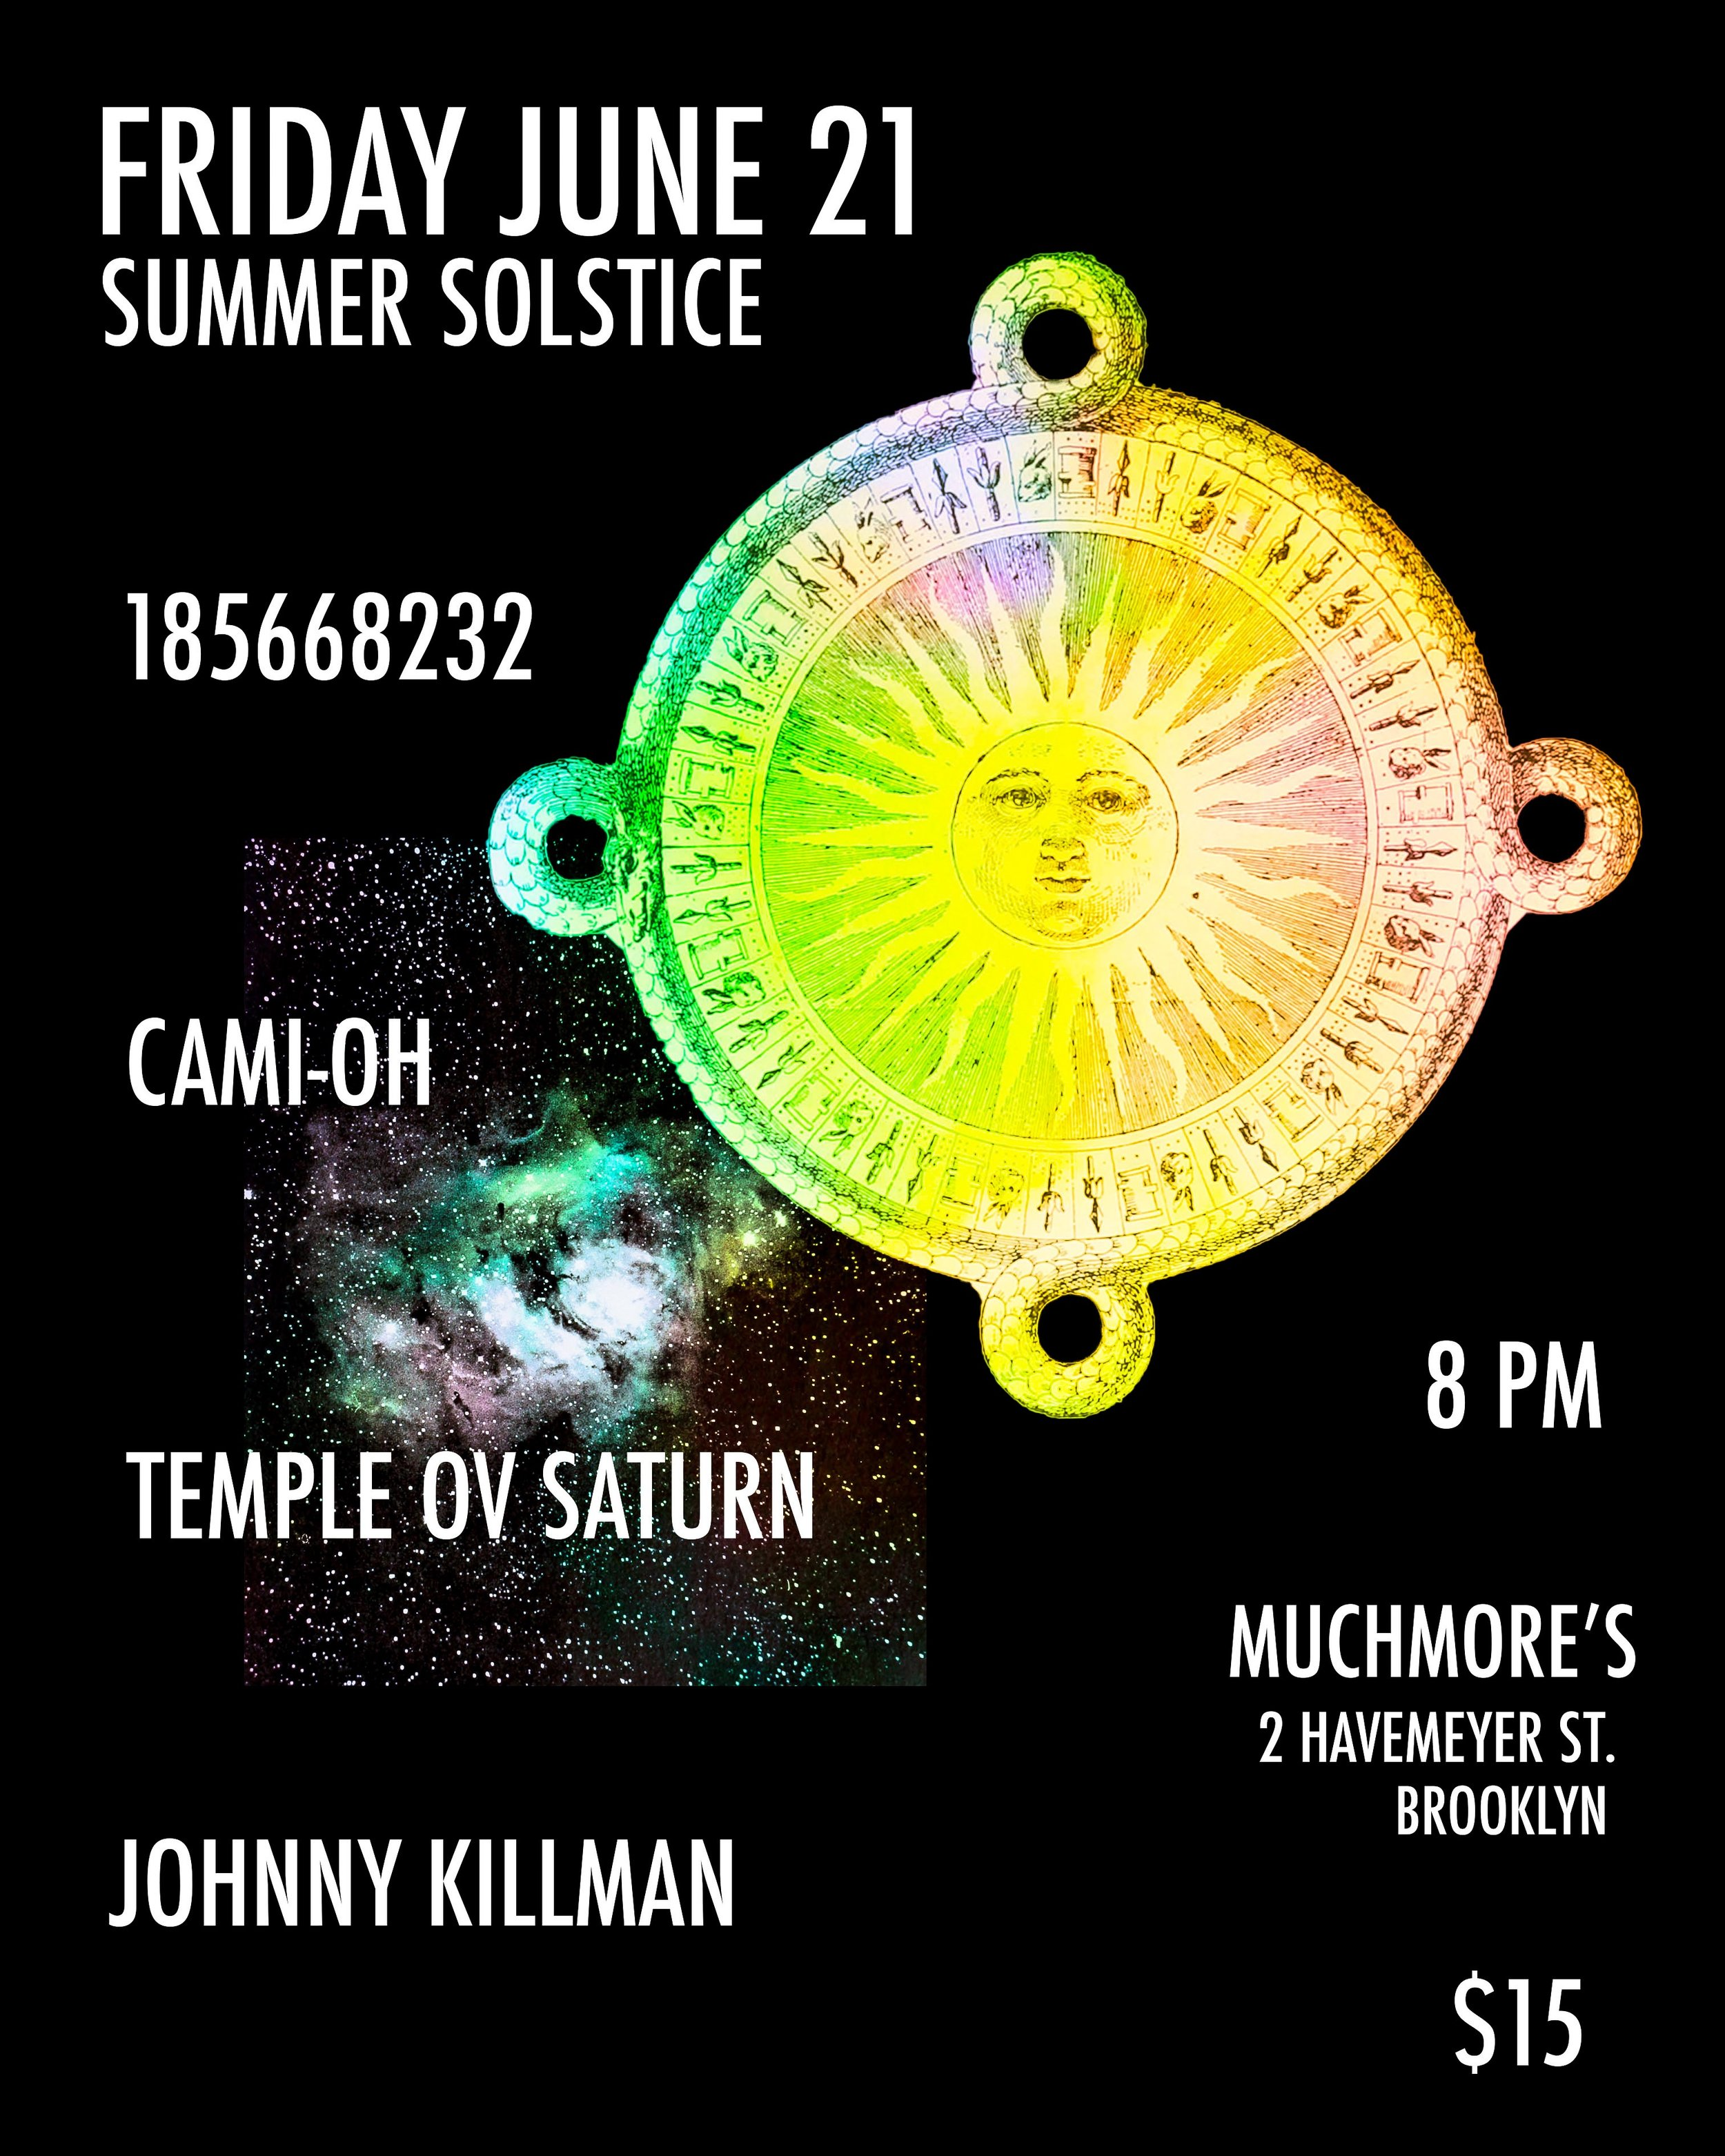 June 21 at Muchmore's in Brooklyn: Temple ov Saturn with 185668232, Cami-Oh, and Johnny Killman